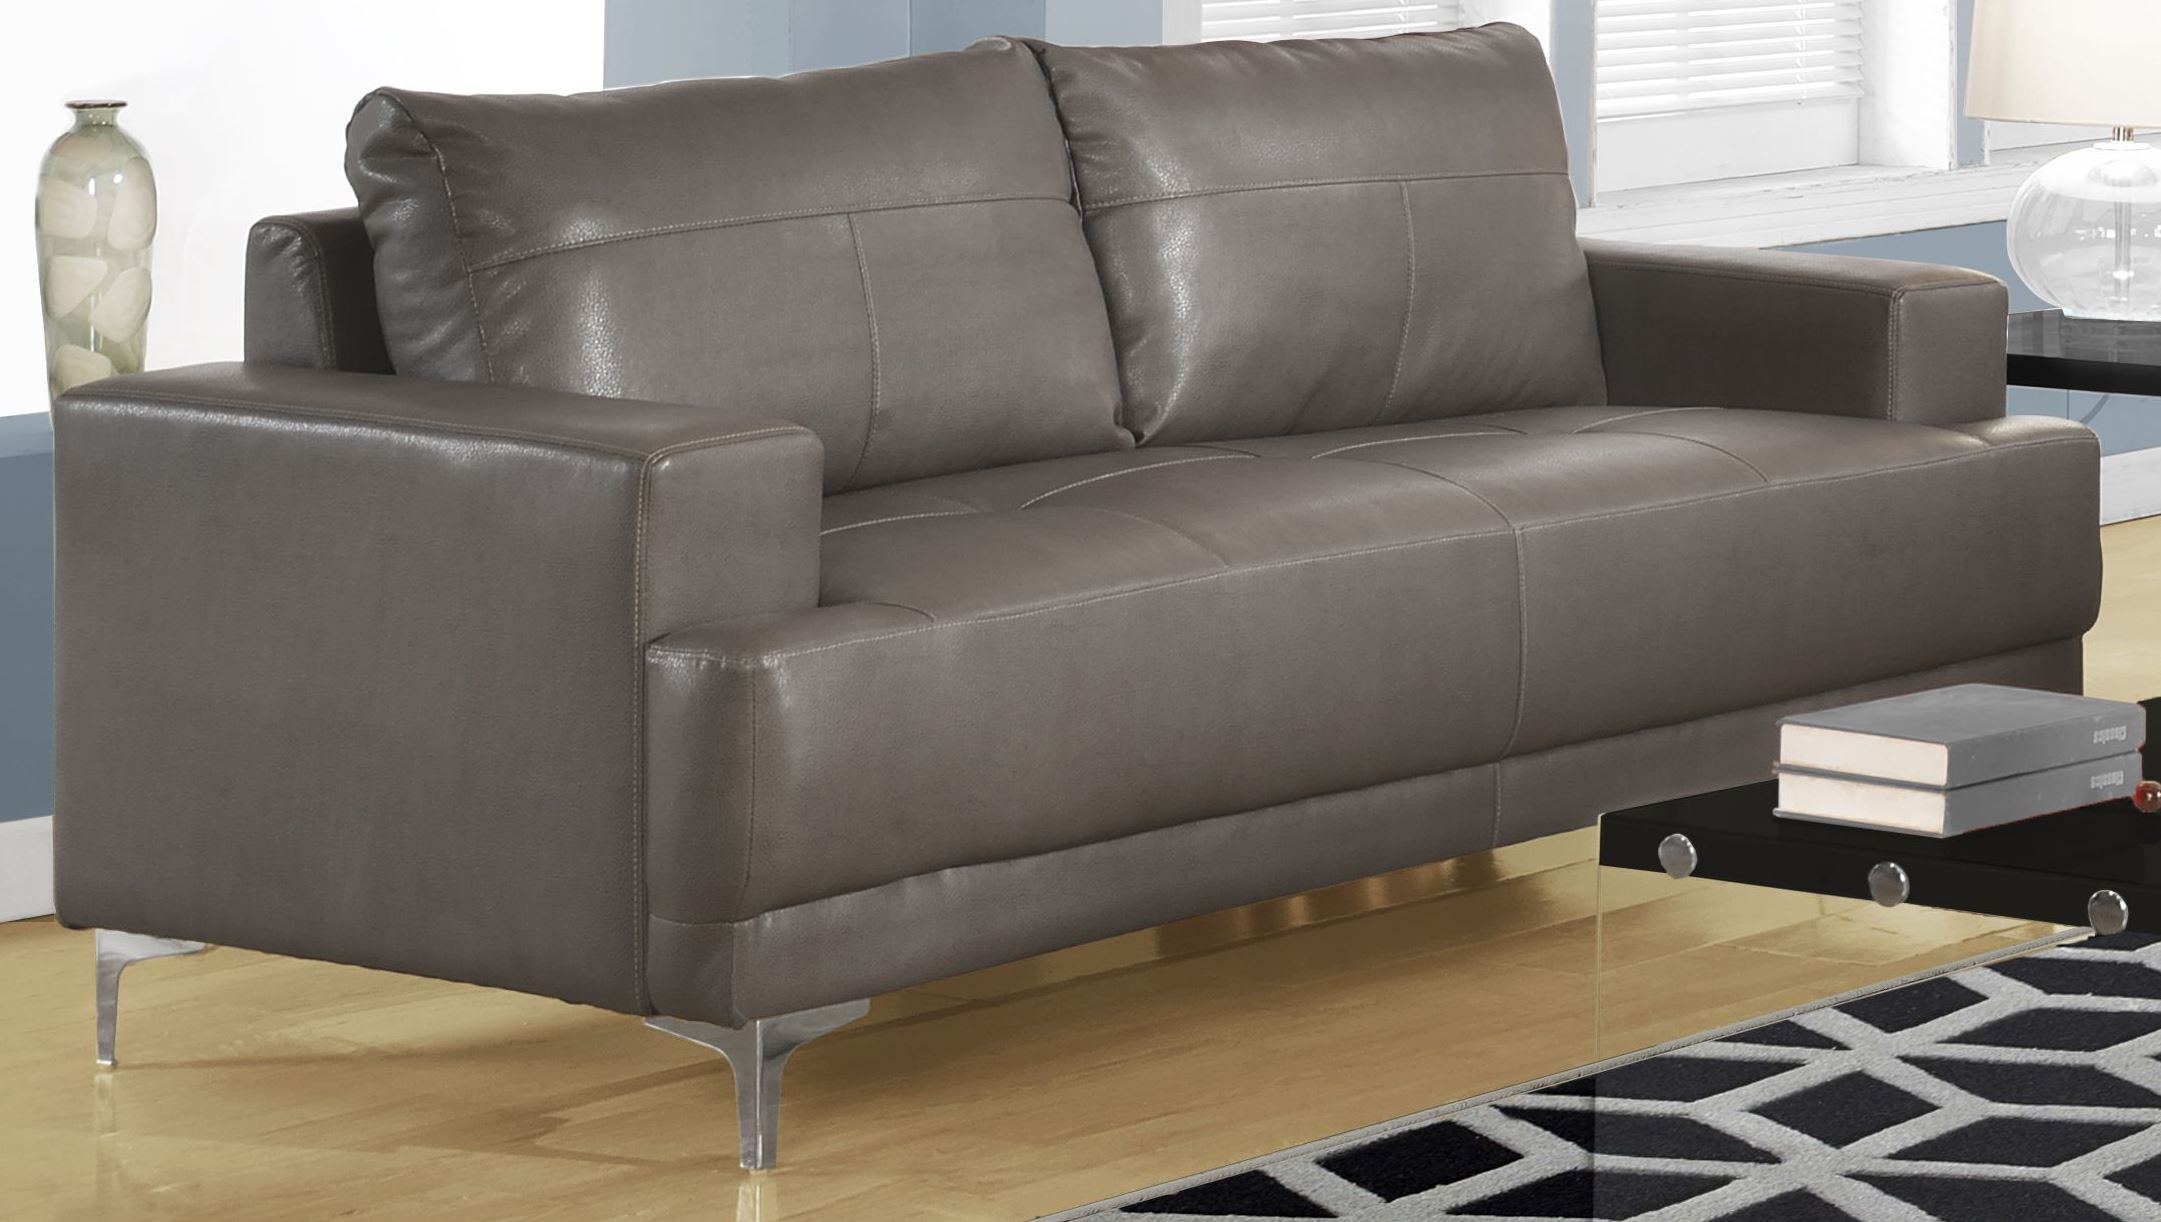 Gray Leather Sofa 8603gy Charcoal Grey Bonded Leather Sofa 8603gy Monarch